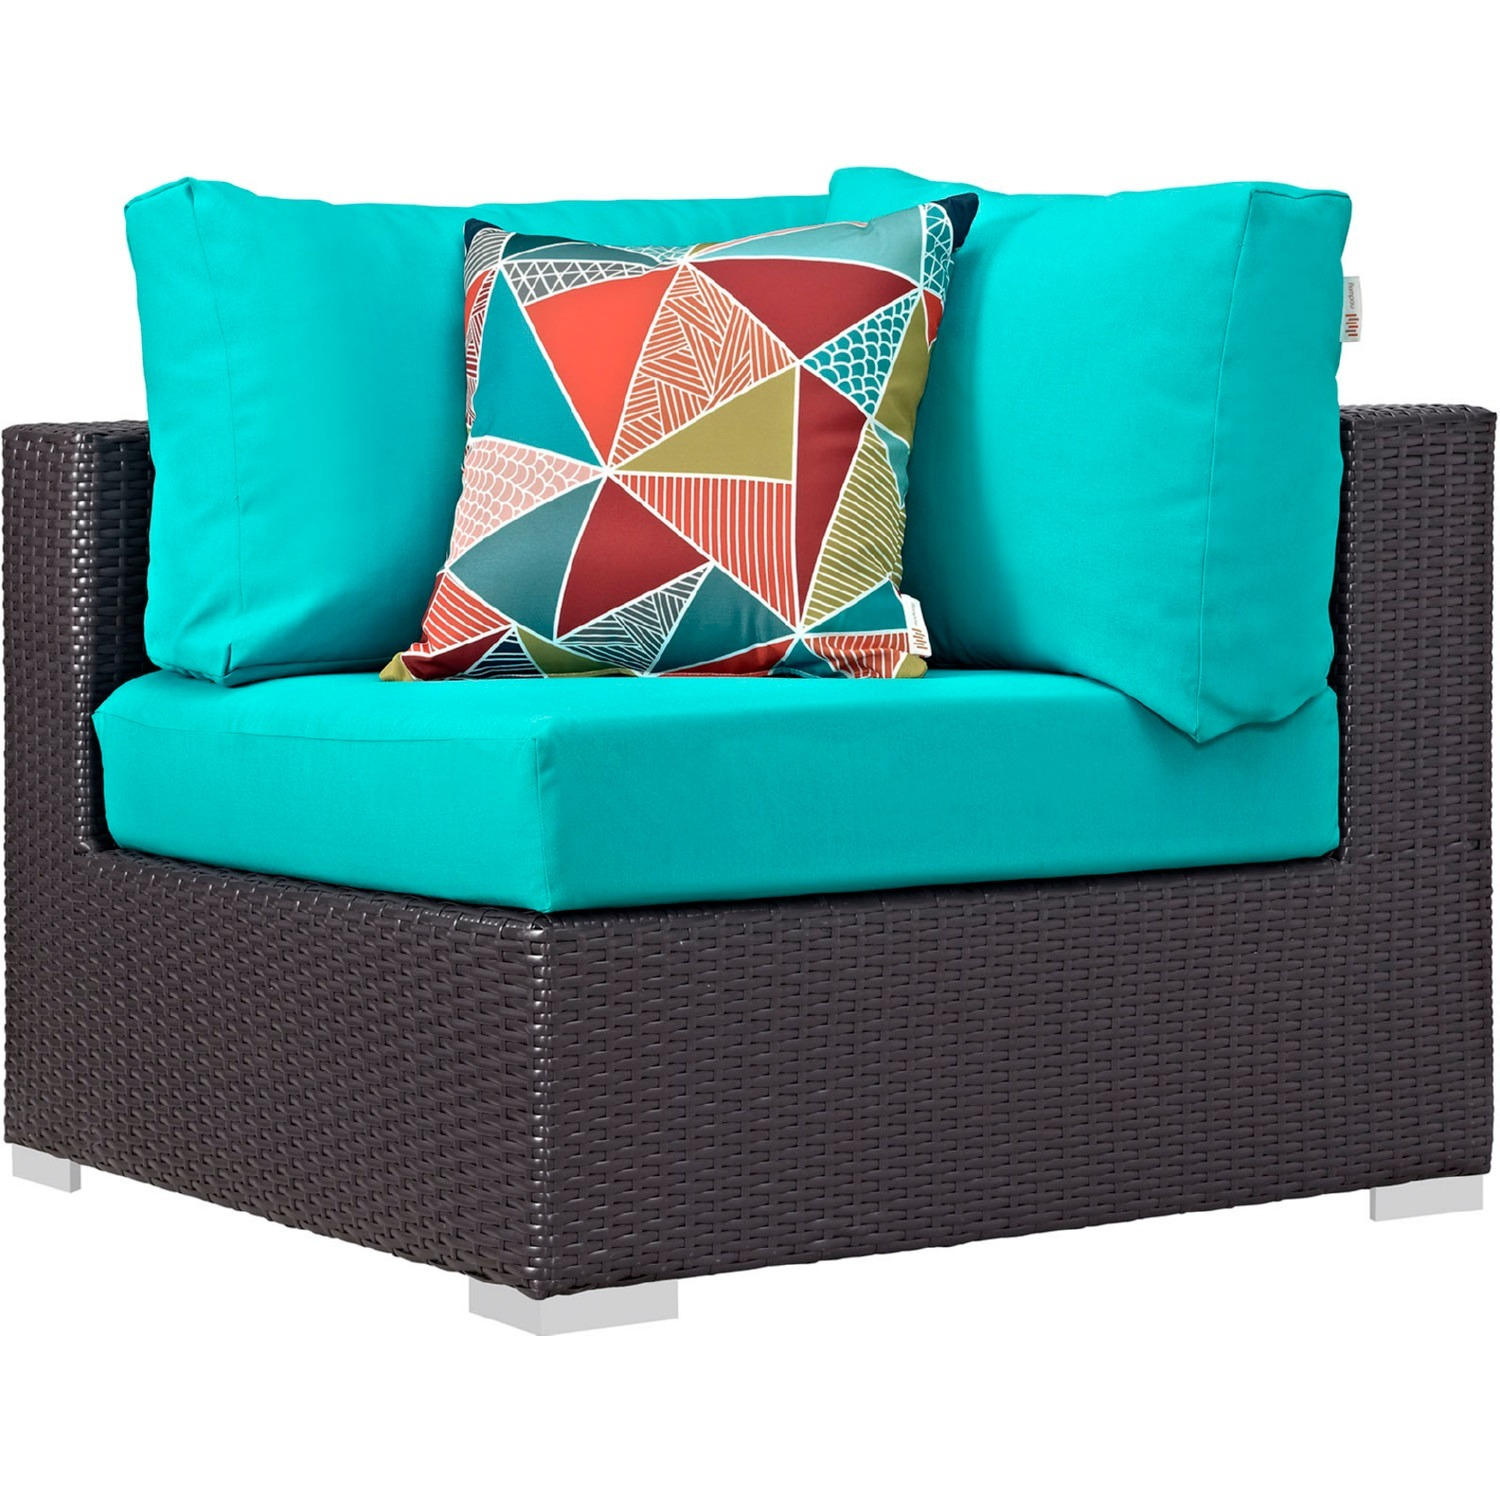 8-Piece Outdoor Sectional In Turquoise Cushion - image-1